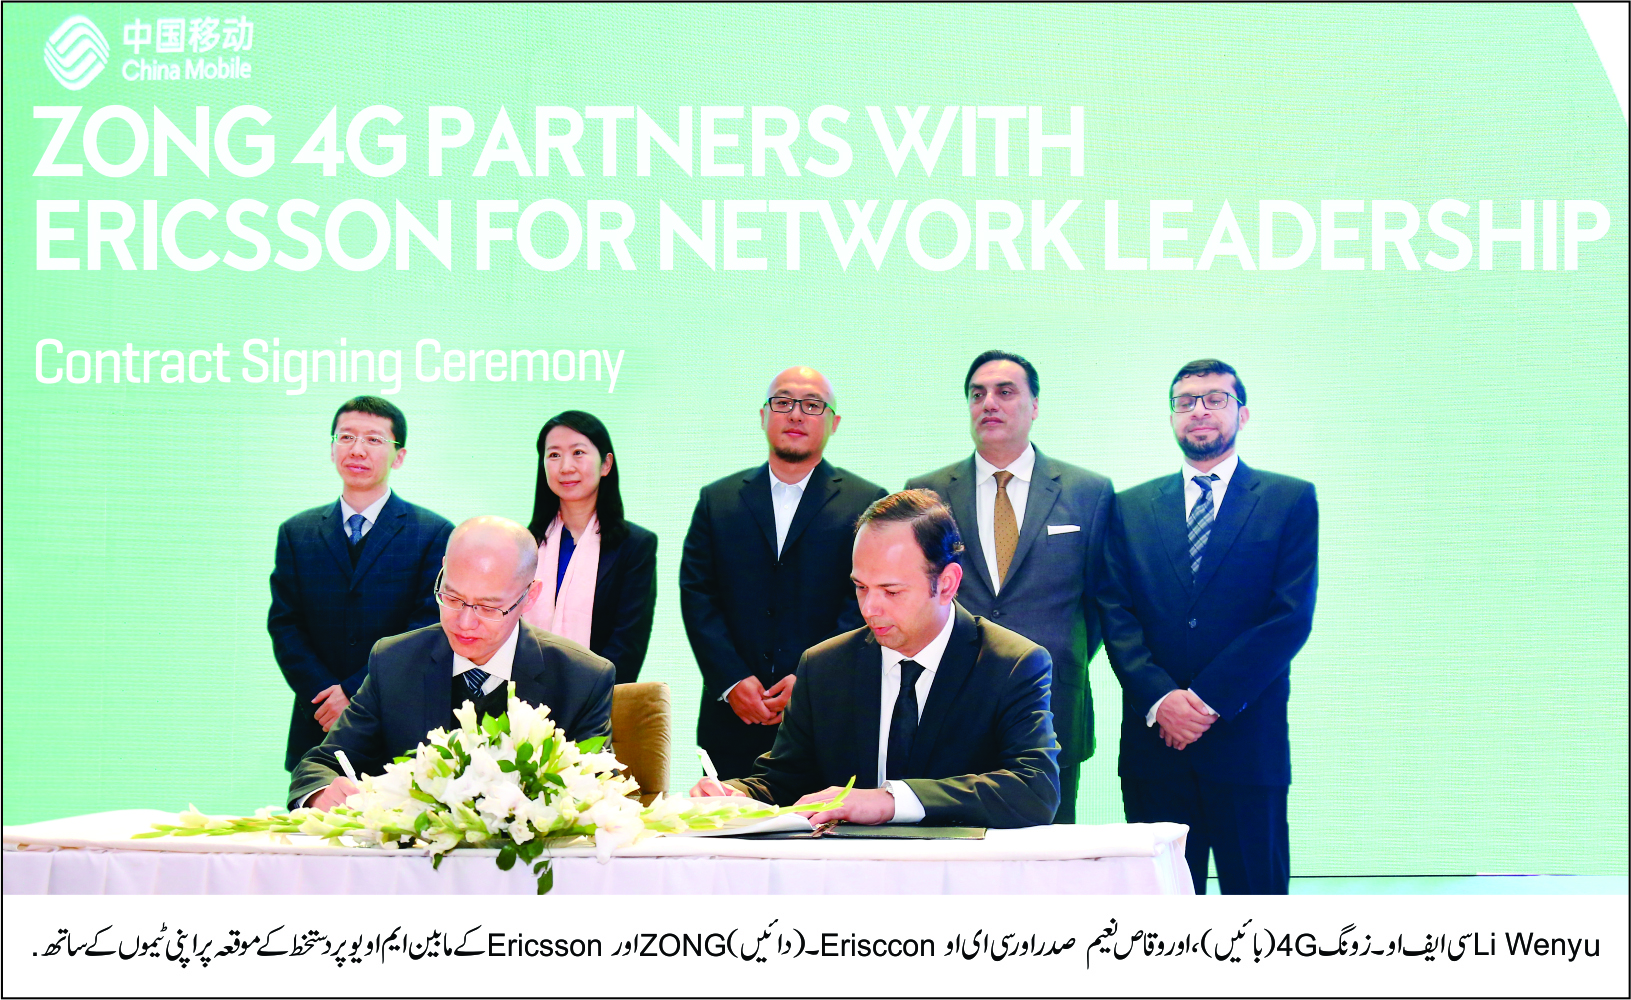 Zong 4G Partners with Ericsson for Network Expansion in Sindh & Baluchistan